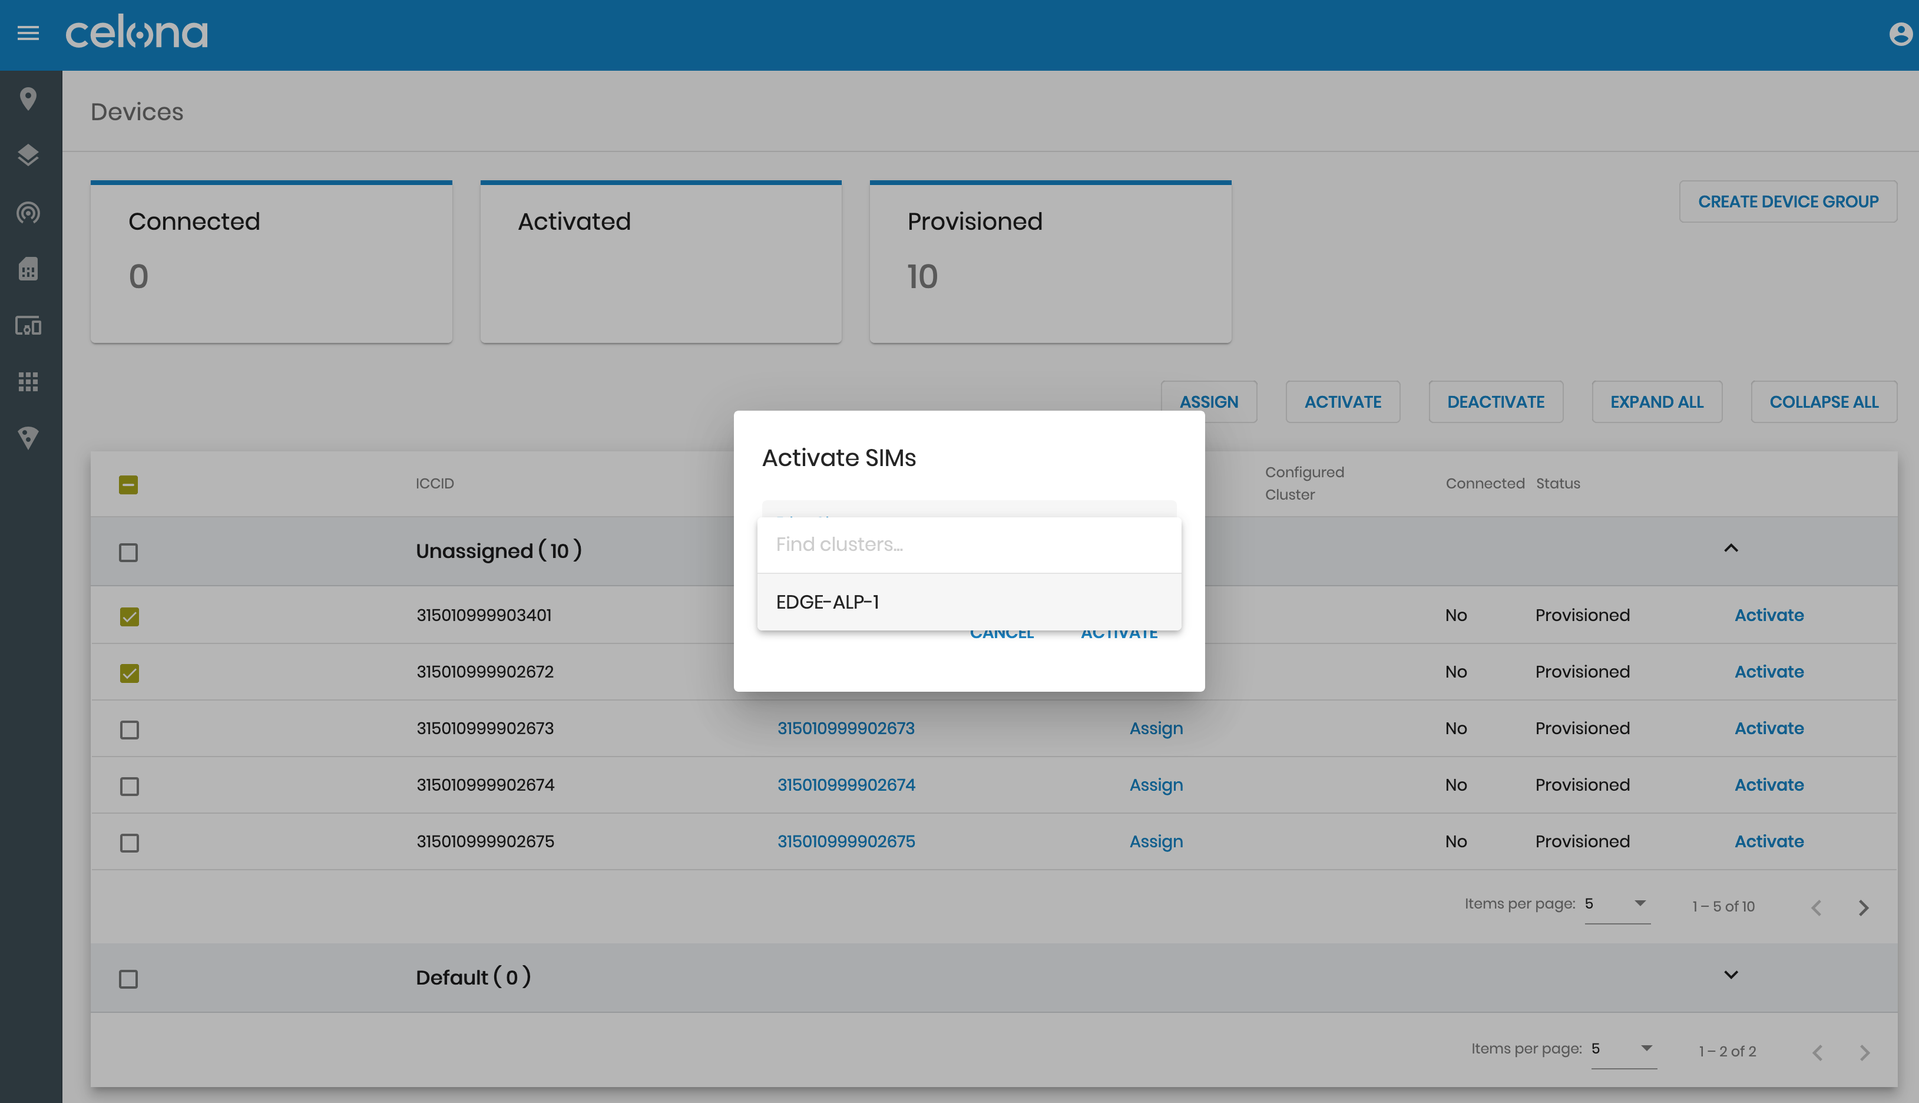 Activating SIM cards within the Celona Orchestrator